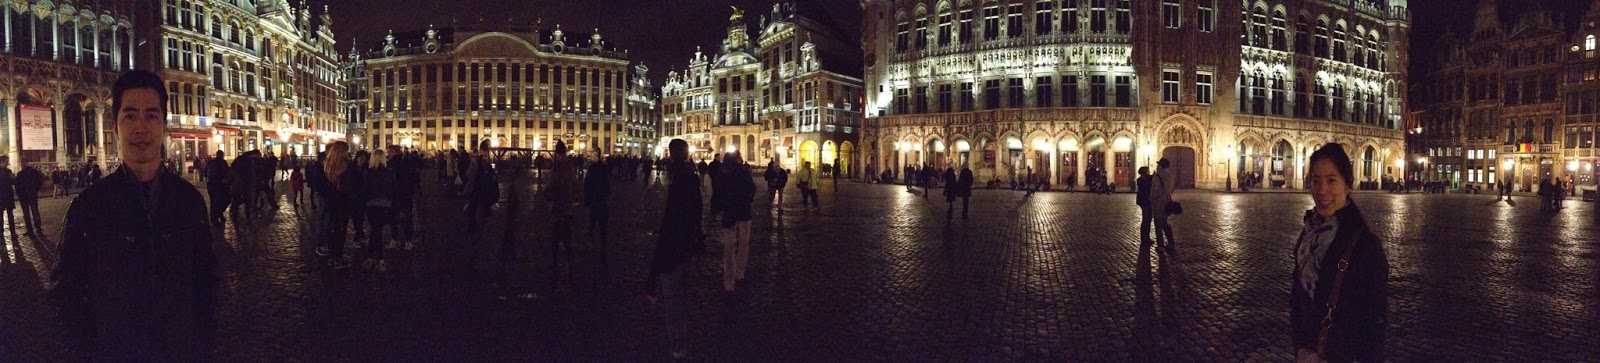 Brussels - Panoramic of Grand Place